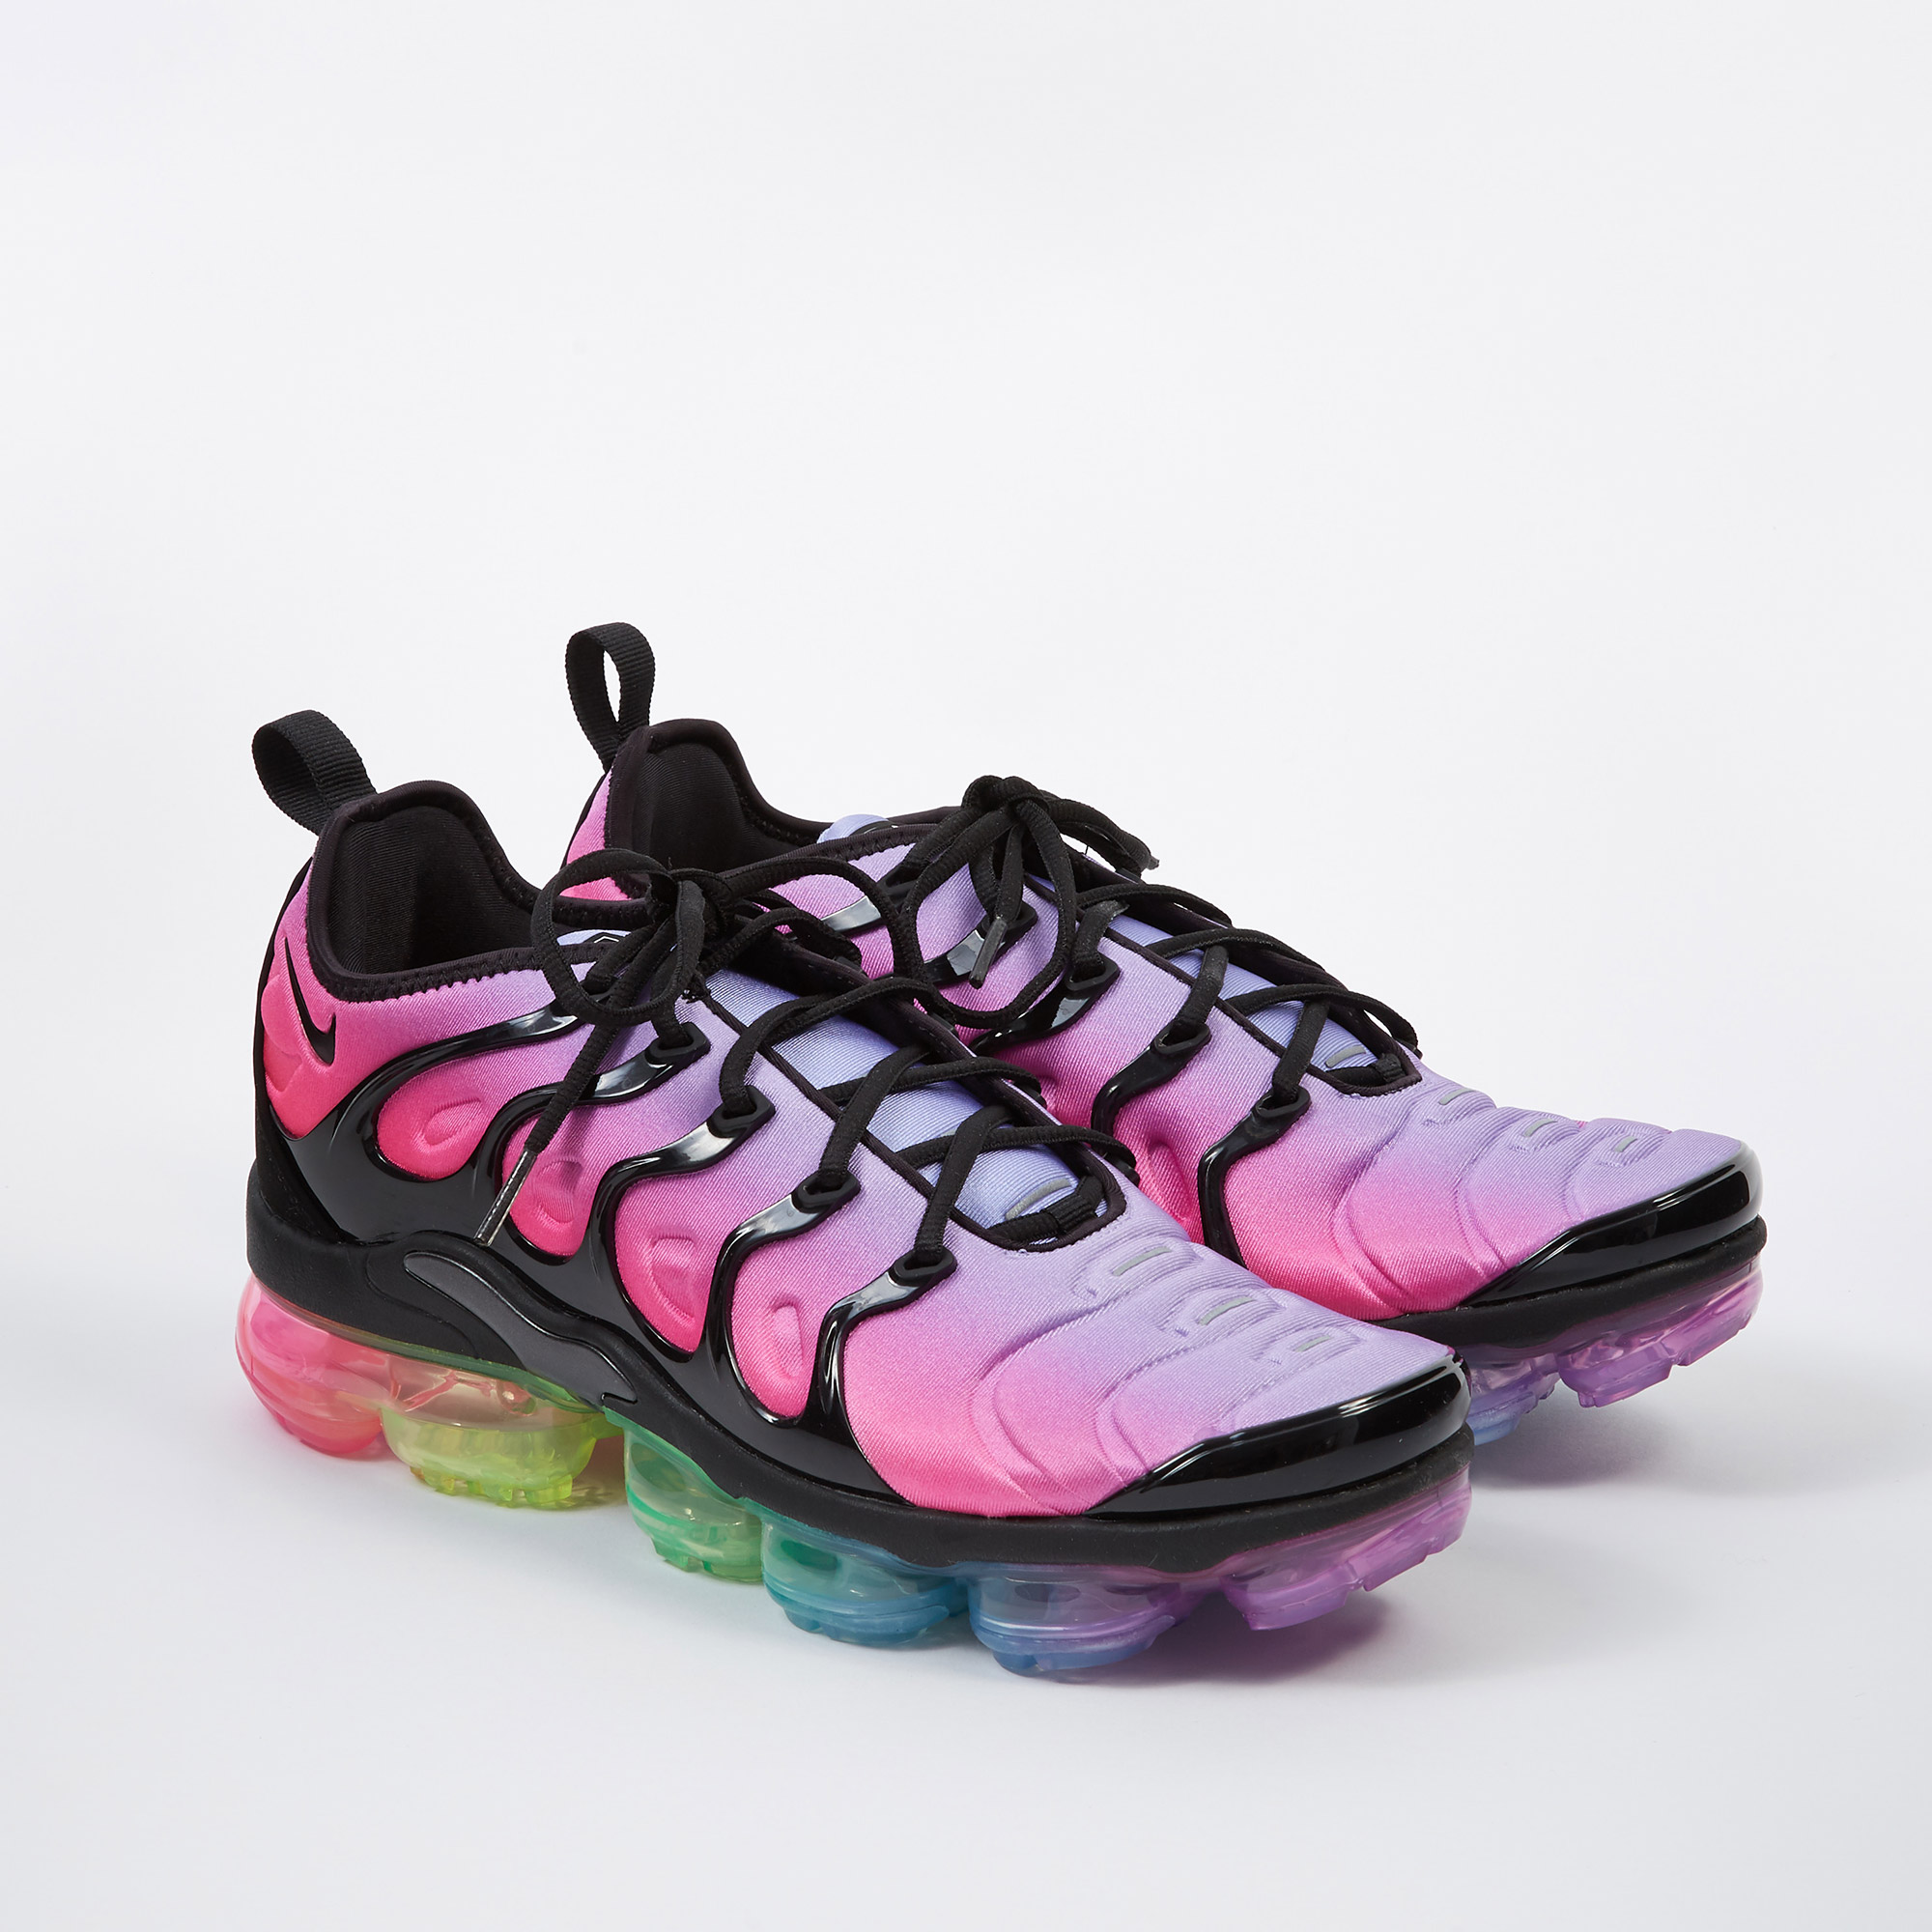 107ea446888 ... coupon code nike air vapormax plus betrue purple pulse black pink blast  fc608 8cf3a